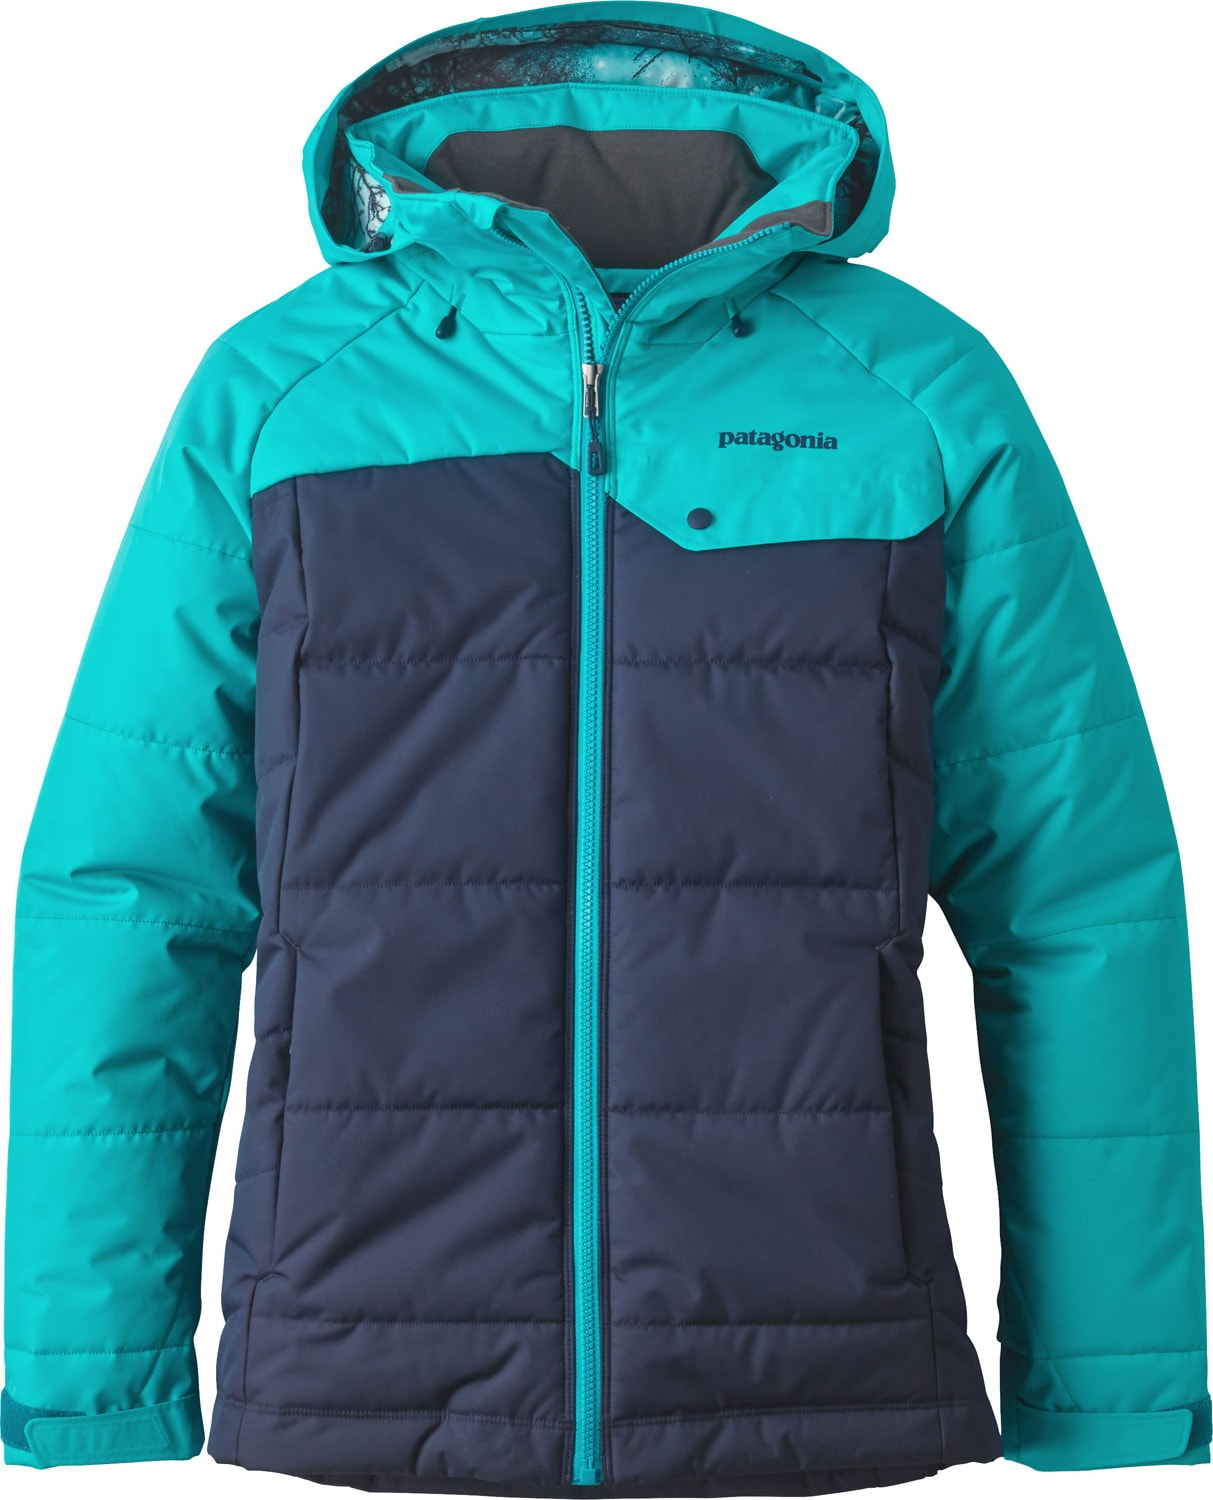 On Sale Patagonia Rubicon Ski Jacket Womens Up To 40 Off